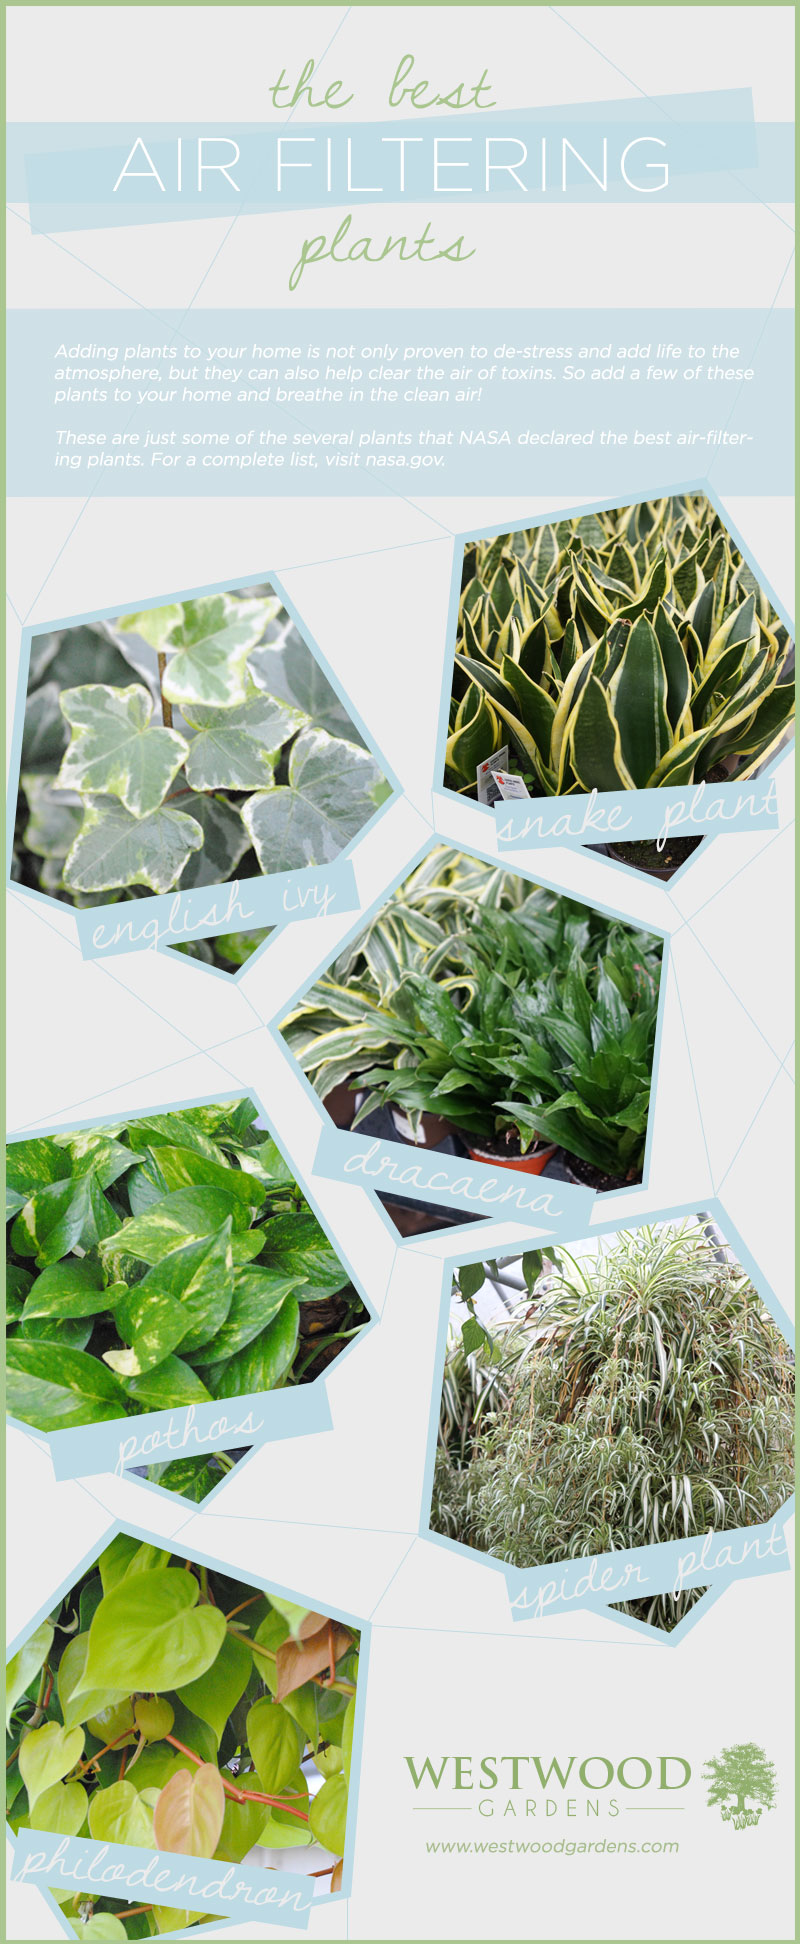 Tropical plants westwood gardens blog for Air filtering plants